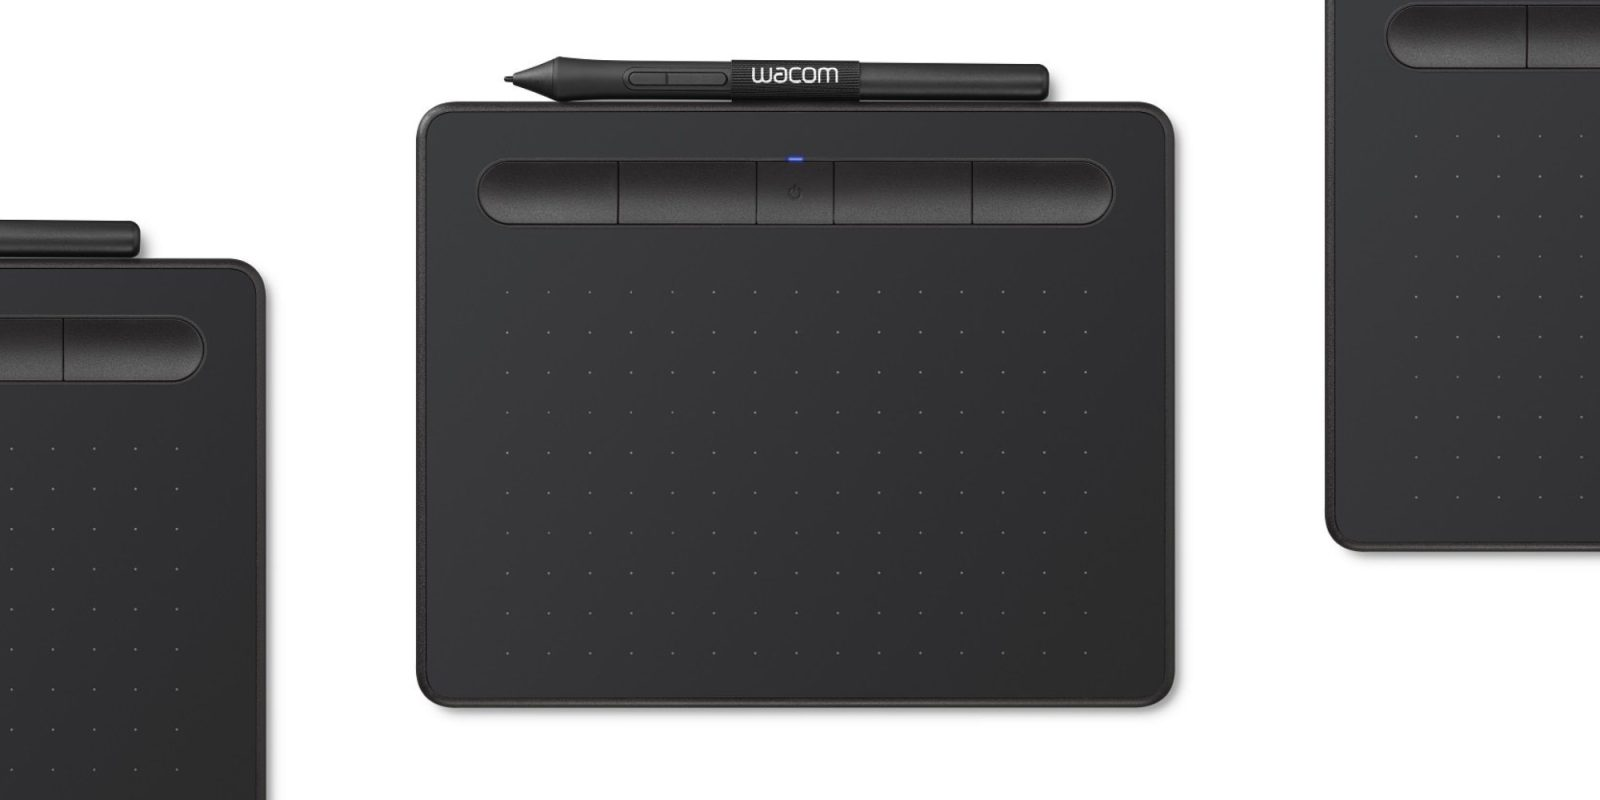 Up your art game with a 20% discount on Wacom's Intuos Wireless Tablet at $80